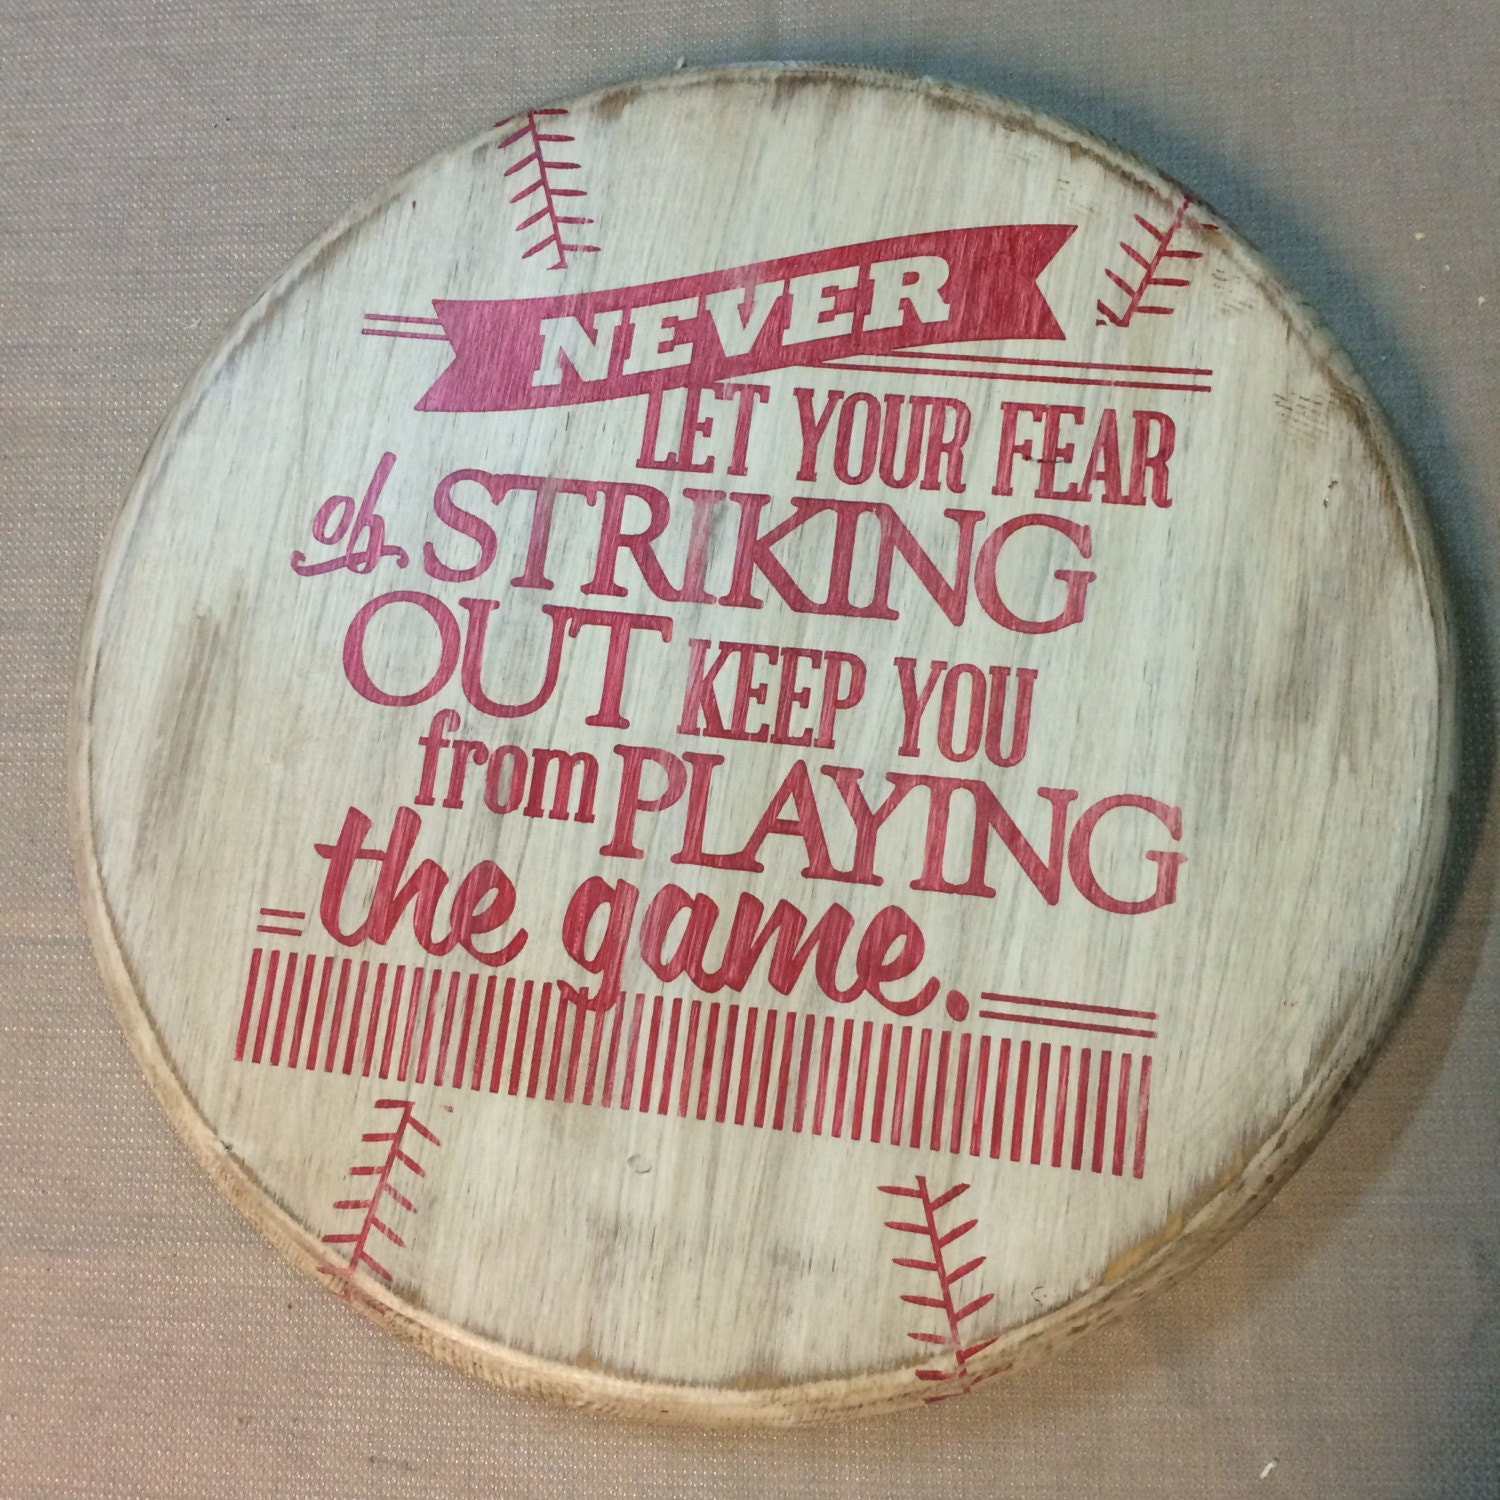 Rustic Baseball Wall Decor With Quote